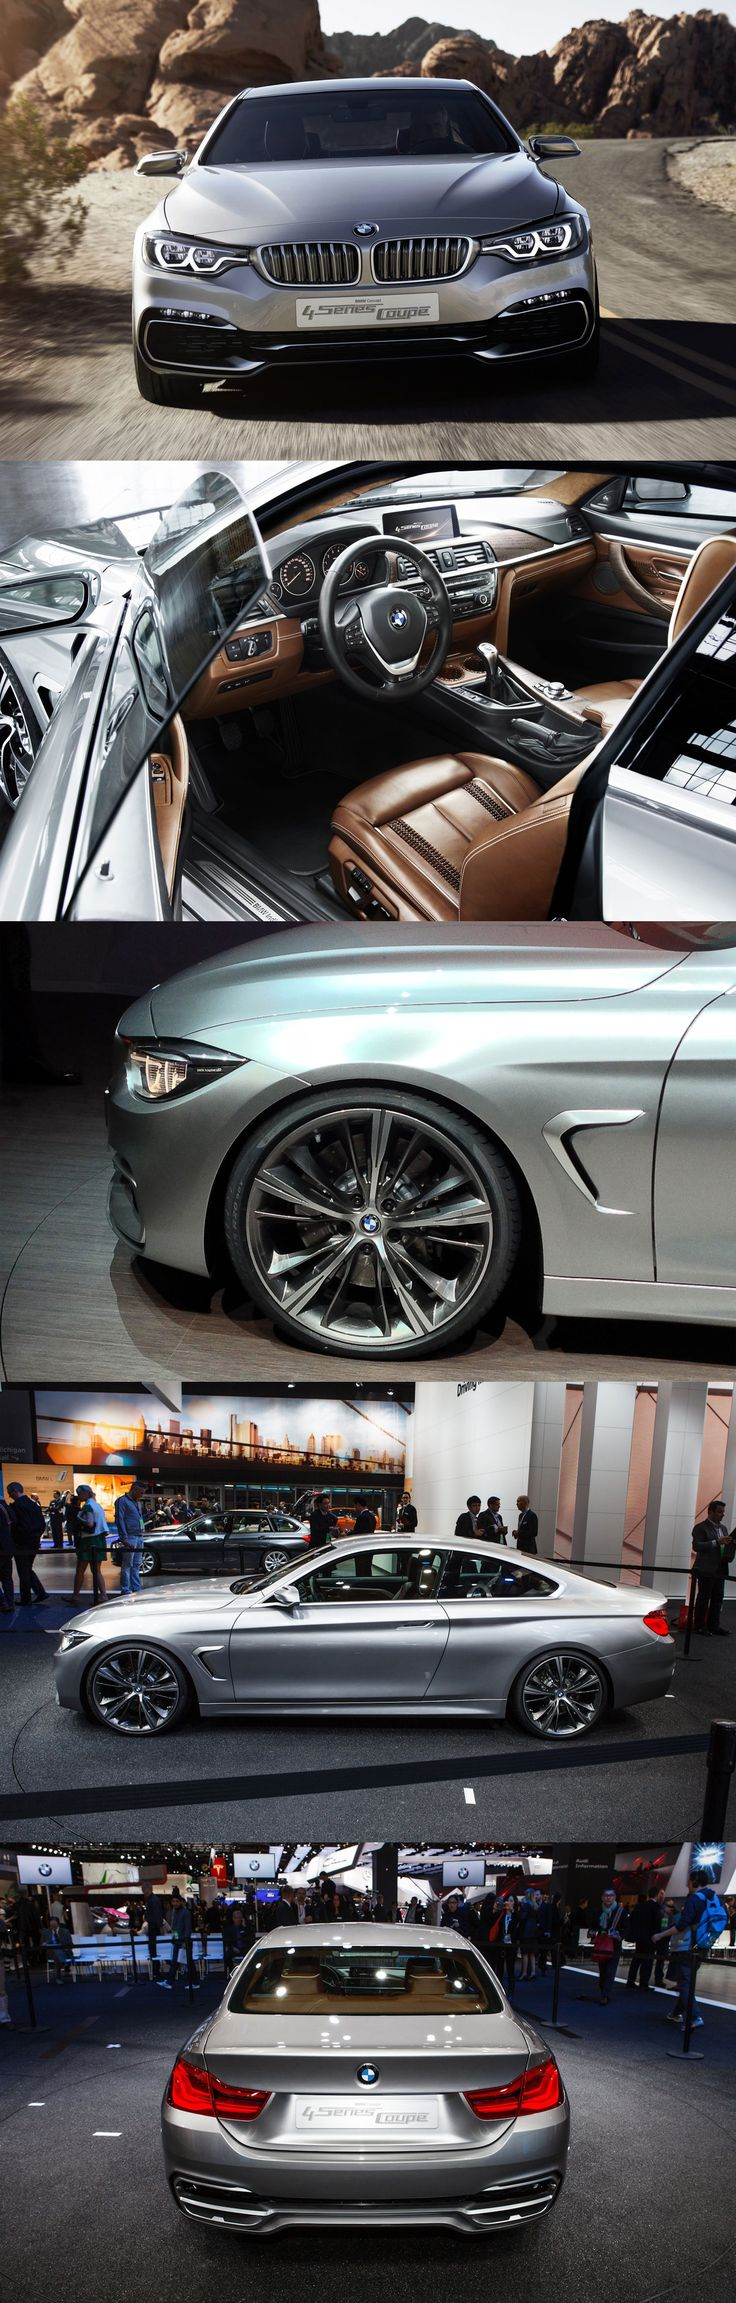 BMW 4-Series Coupe Concept - with financial independence you would be able to…